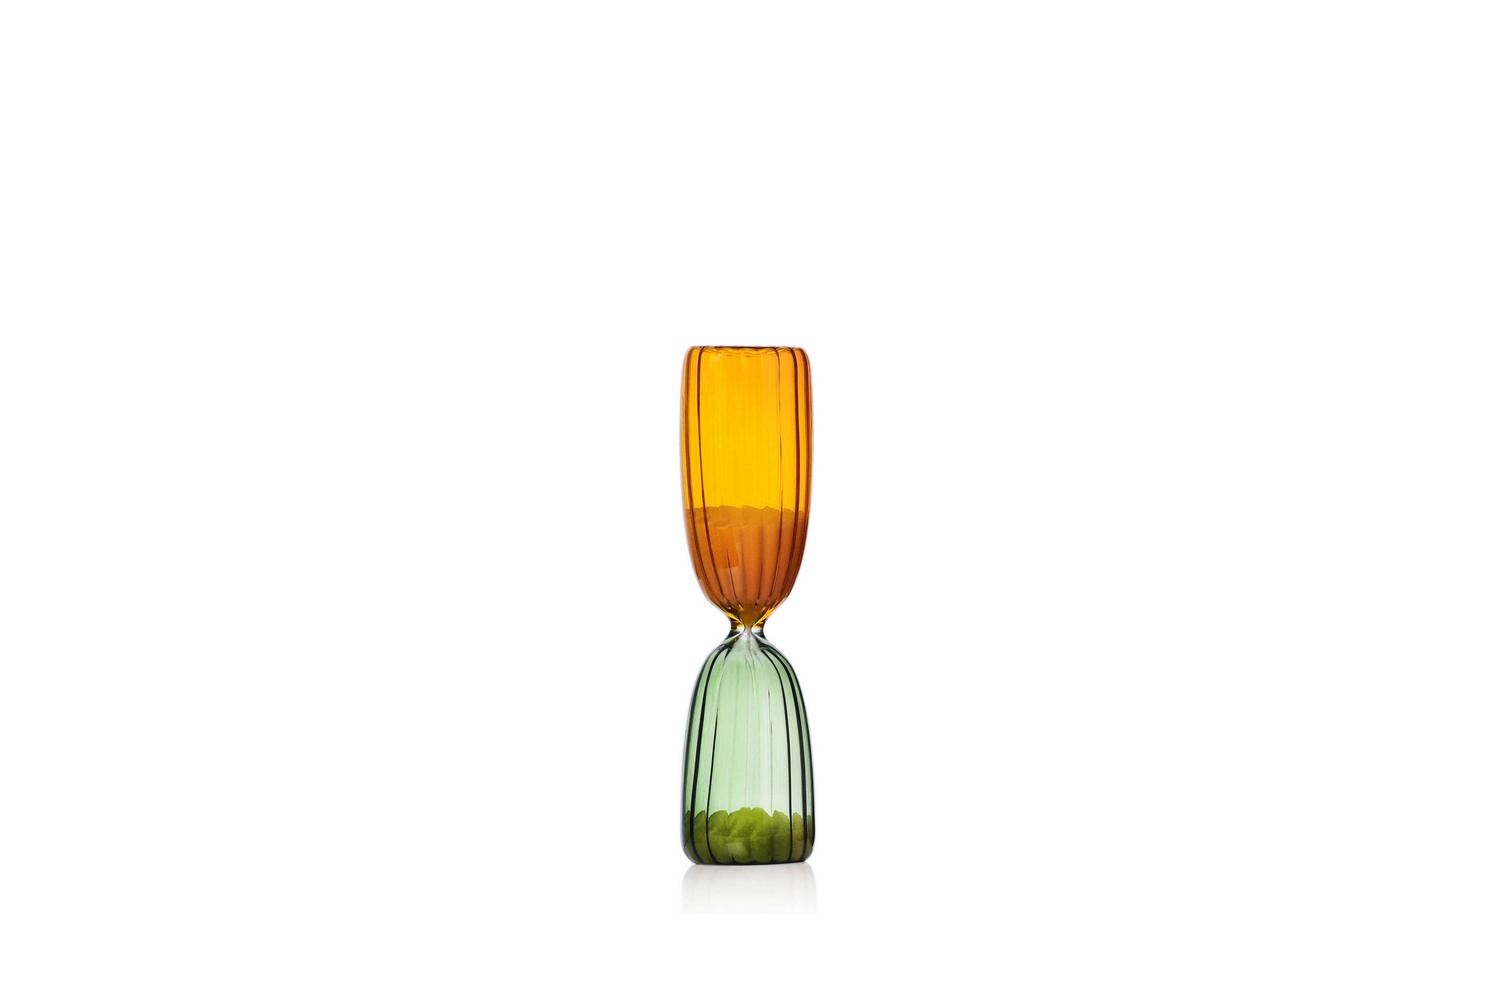 Times Hourglass 5 Minutes - Green/Amber by Denis Guidone for Ichendorf Milano